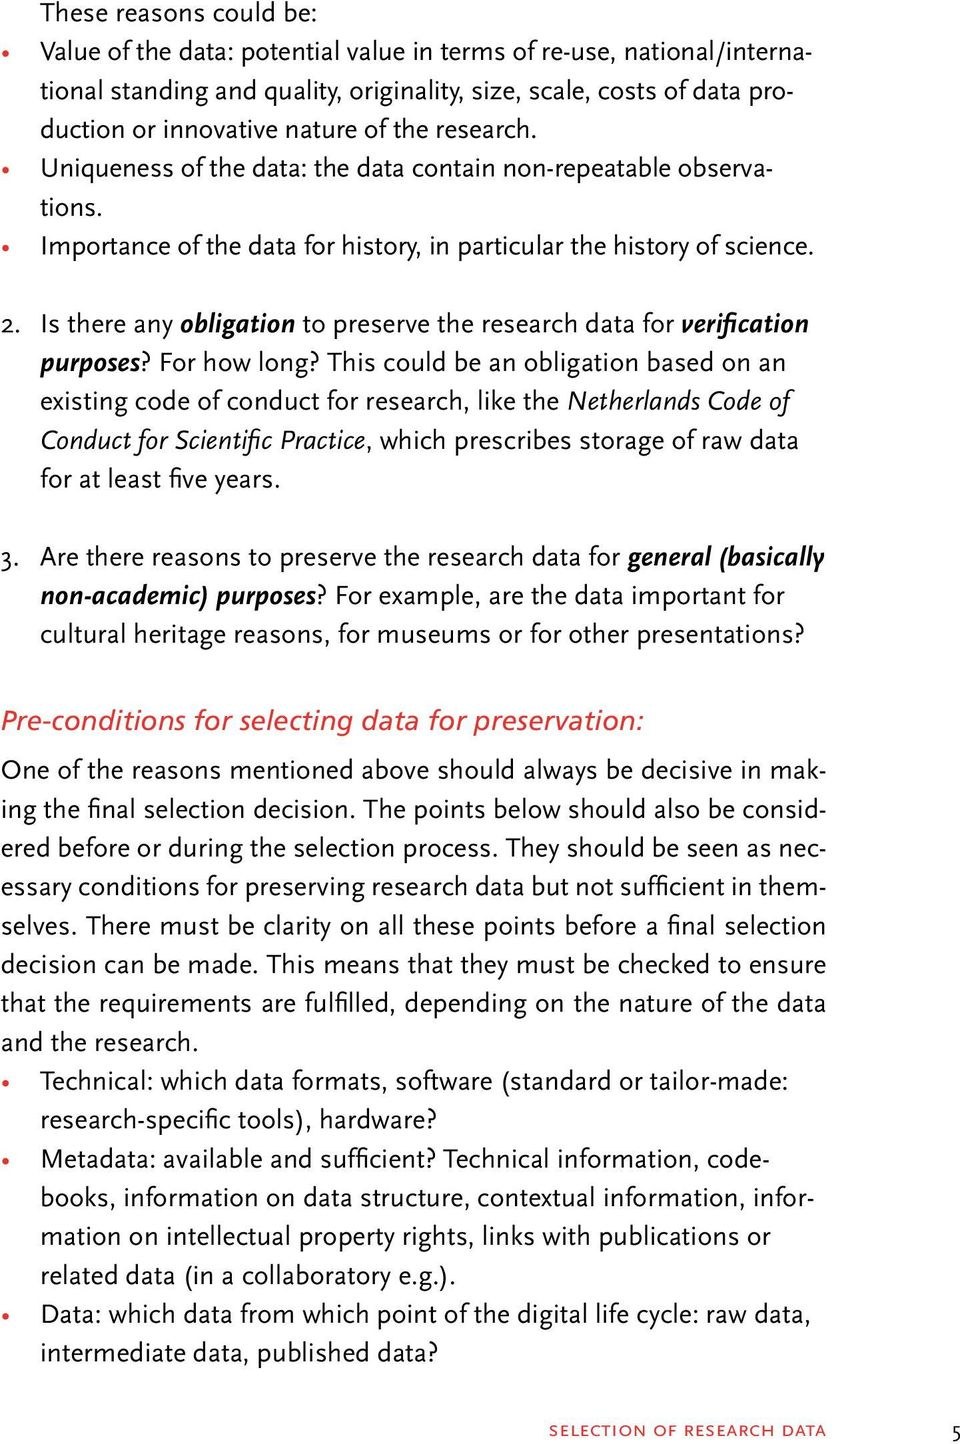 Is there any obligation to preserve the research data for verification purposes? For how long?